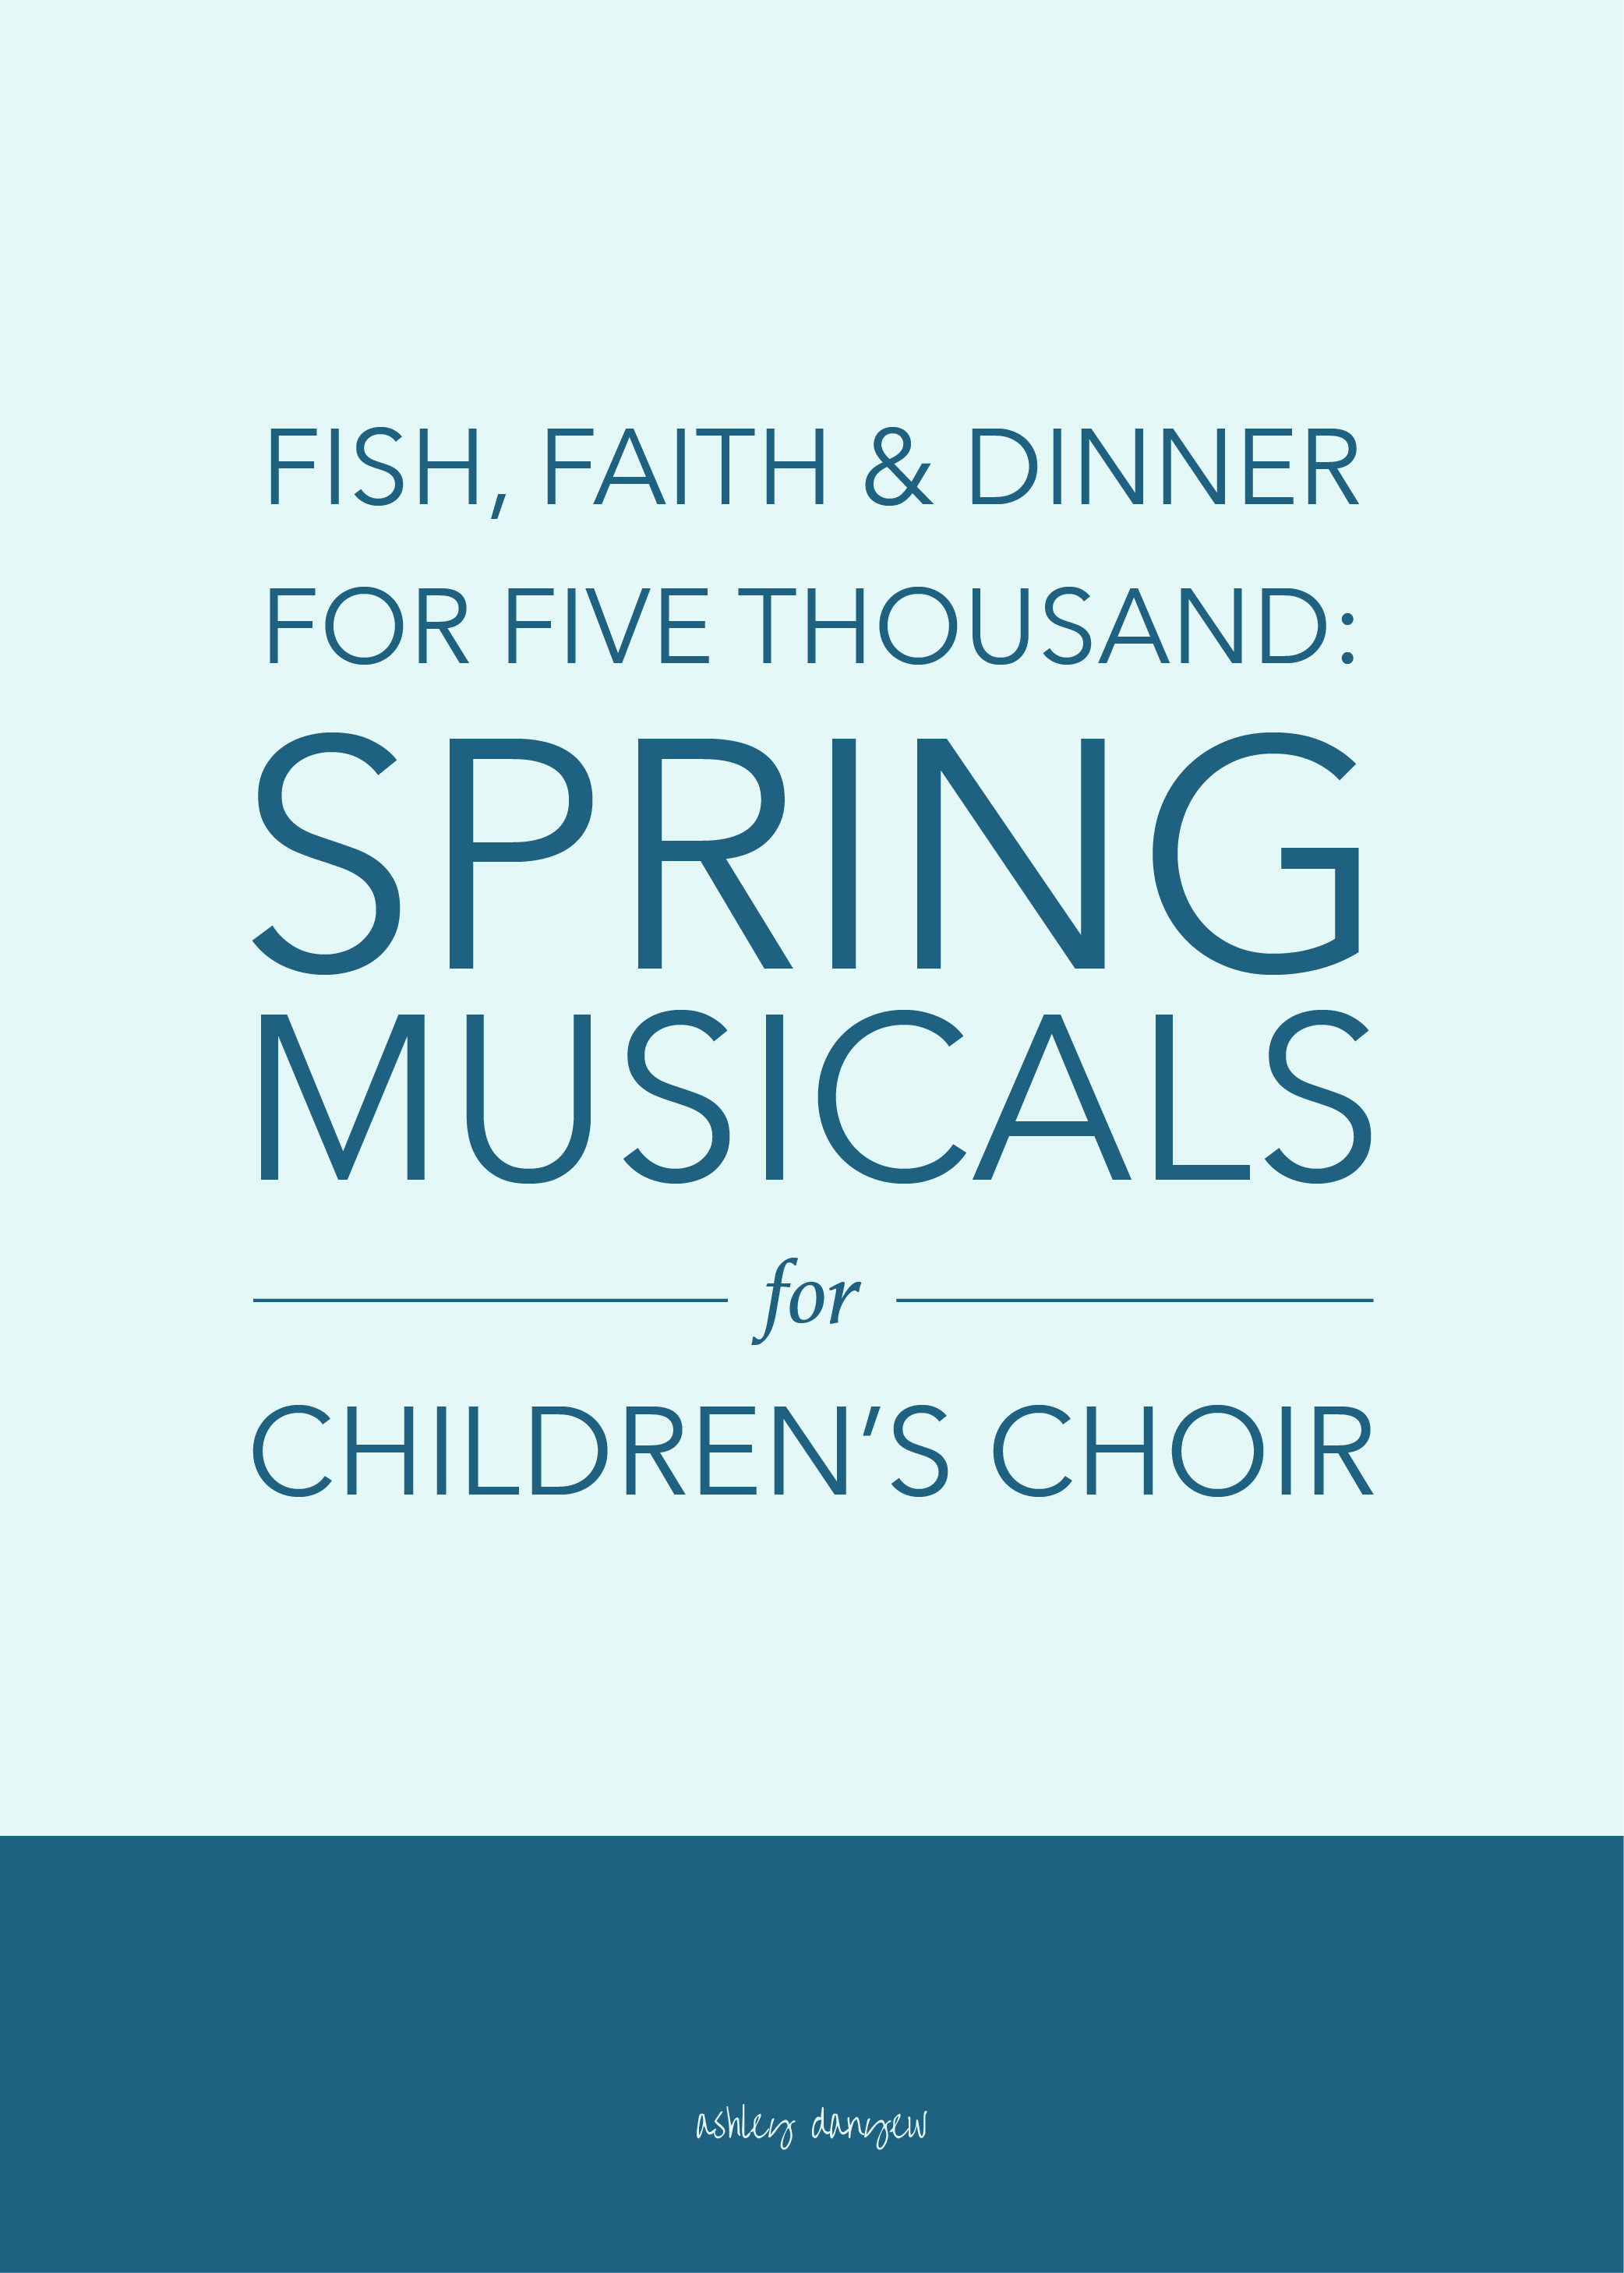 Spring Musicals for Children's Choir-09.png